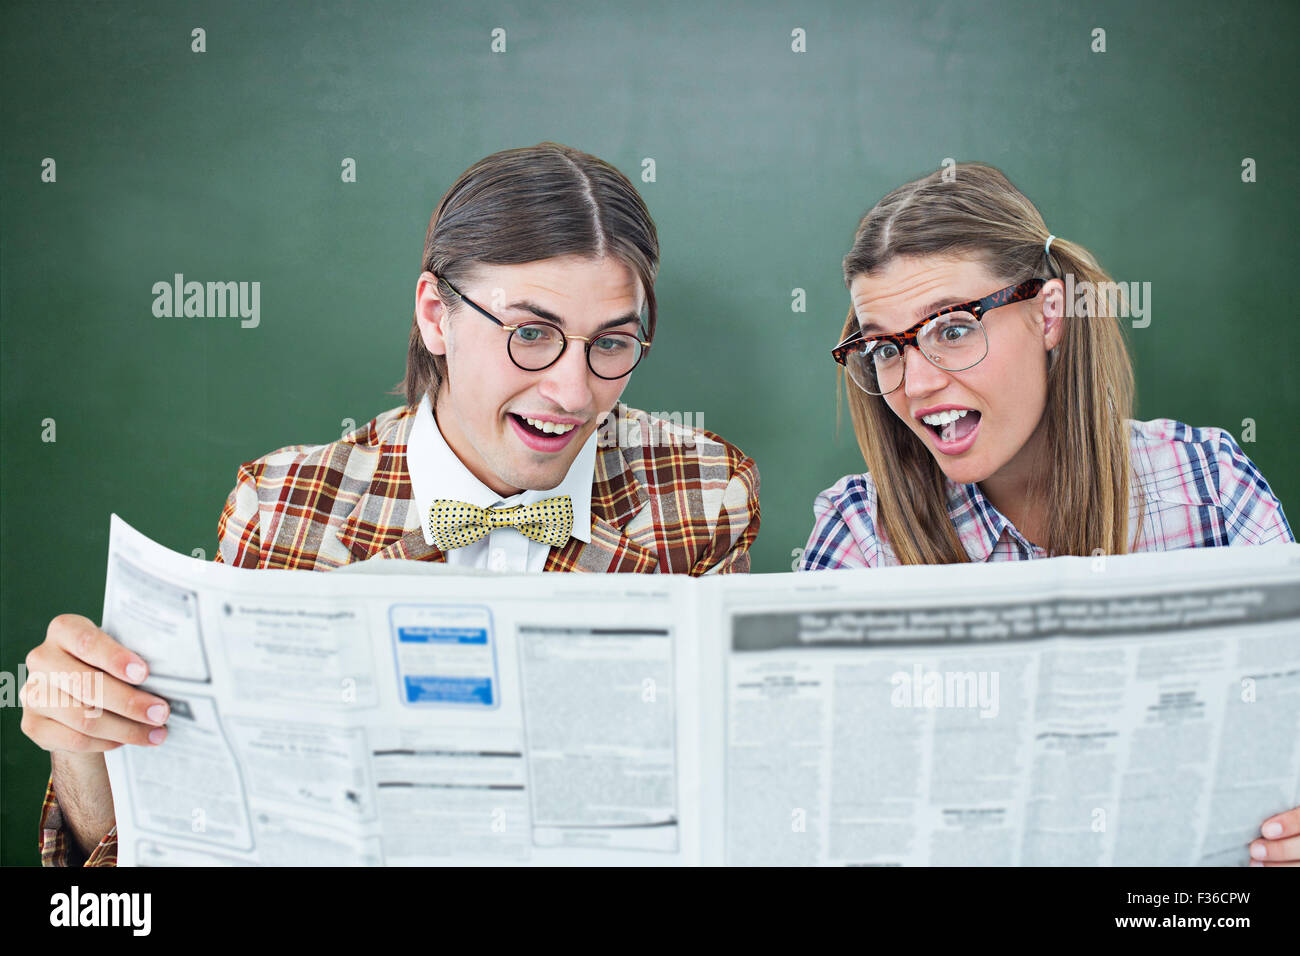 Composite image of geeky hipsters reading the newspaper - Stock Image